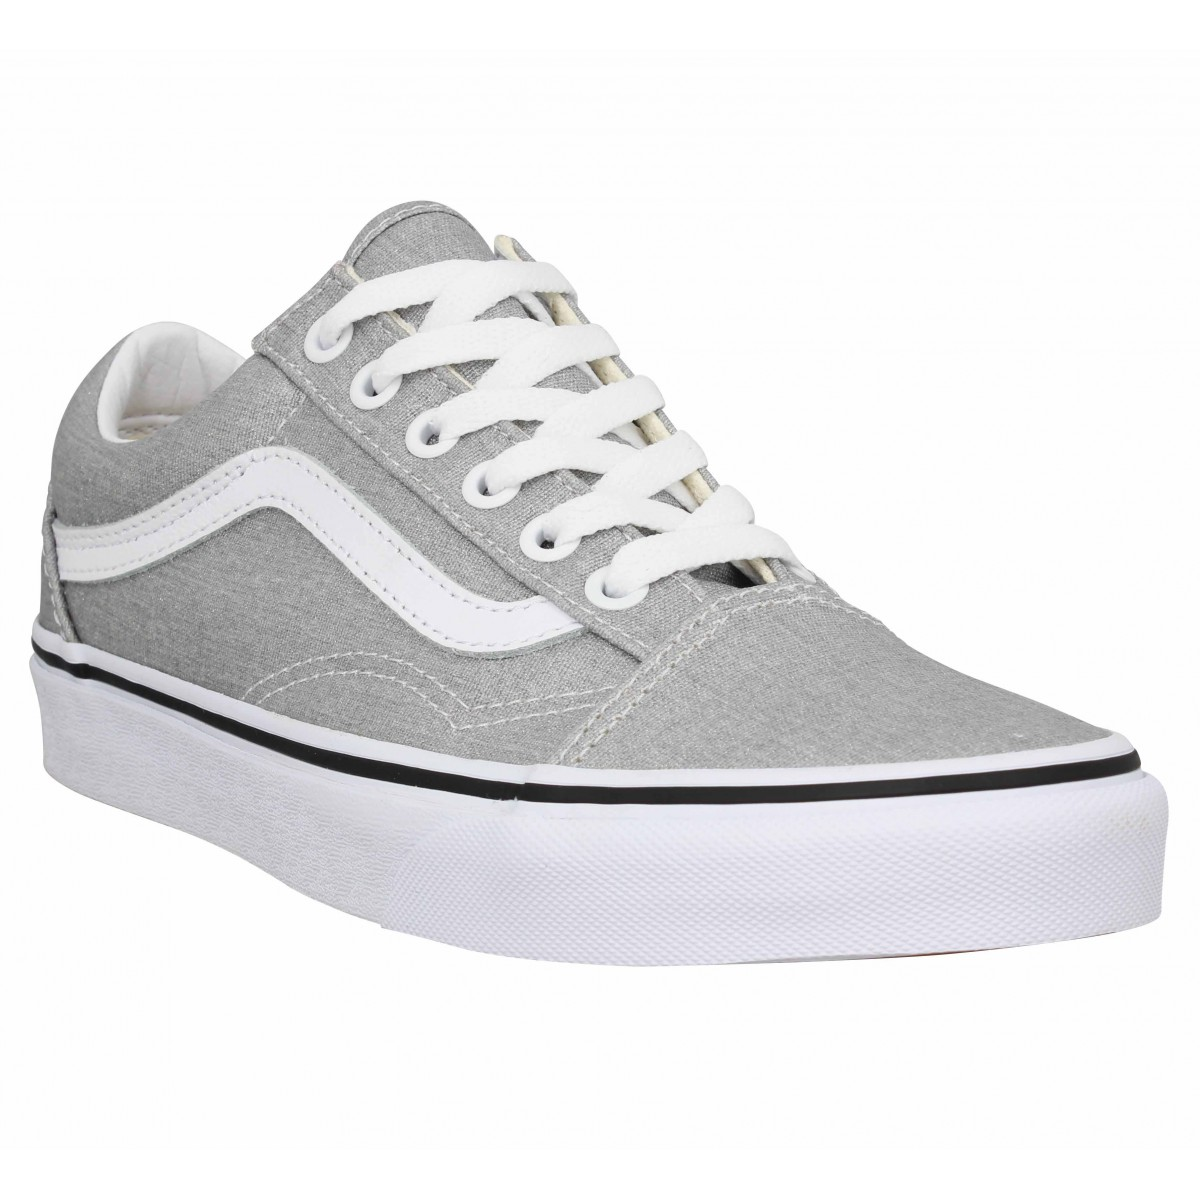 Baskets VANS Old Skool toile Femme Silver